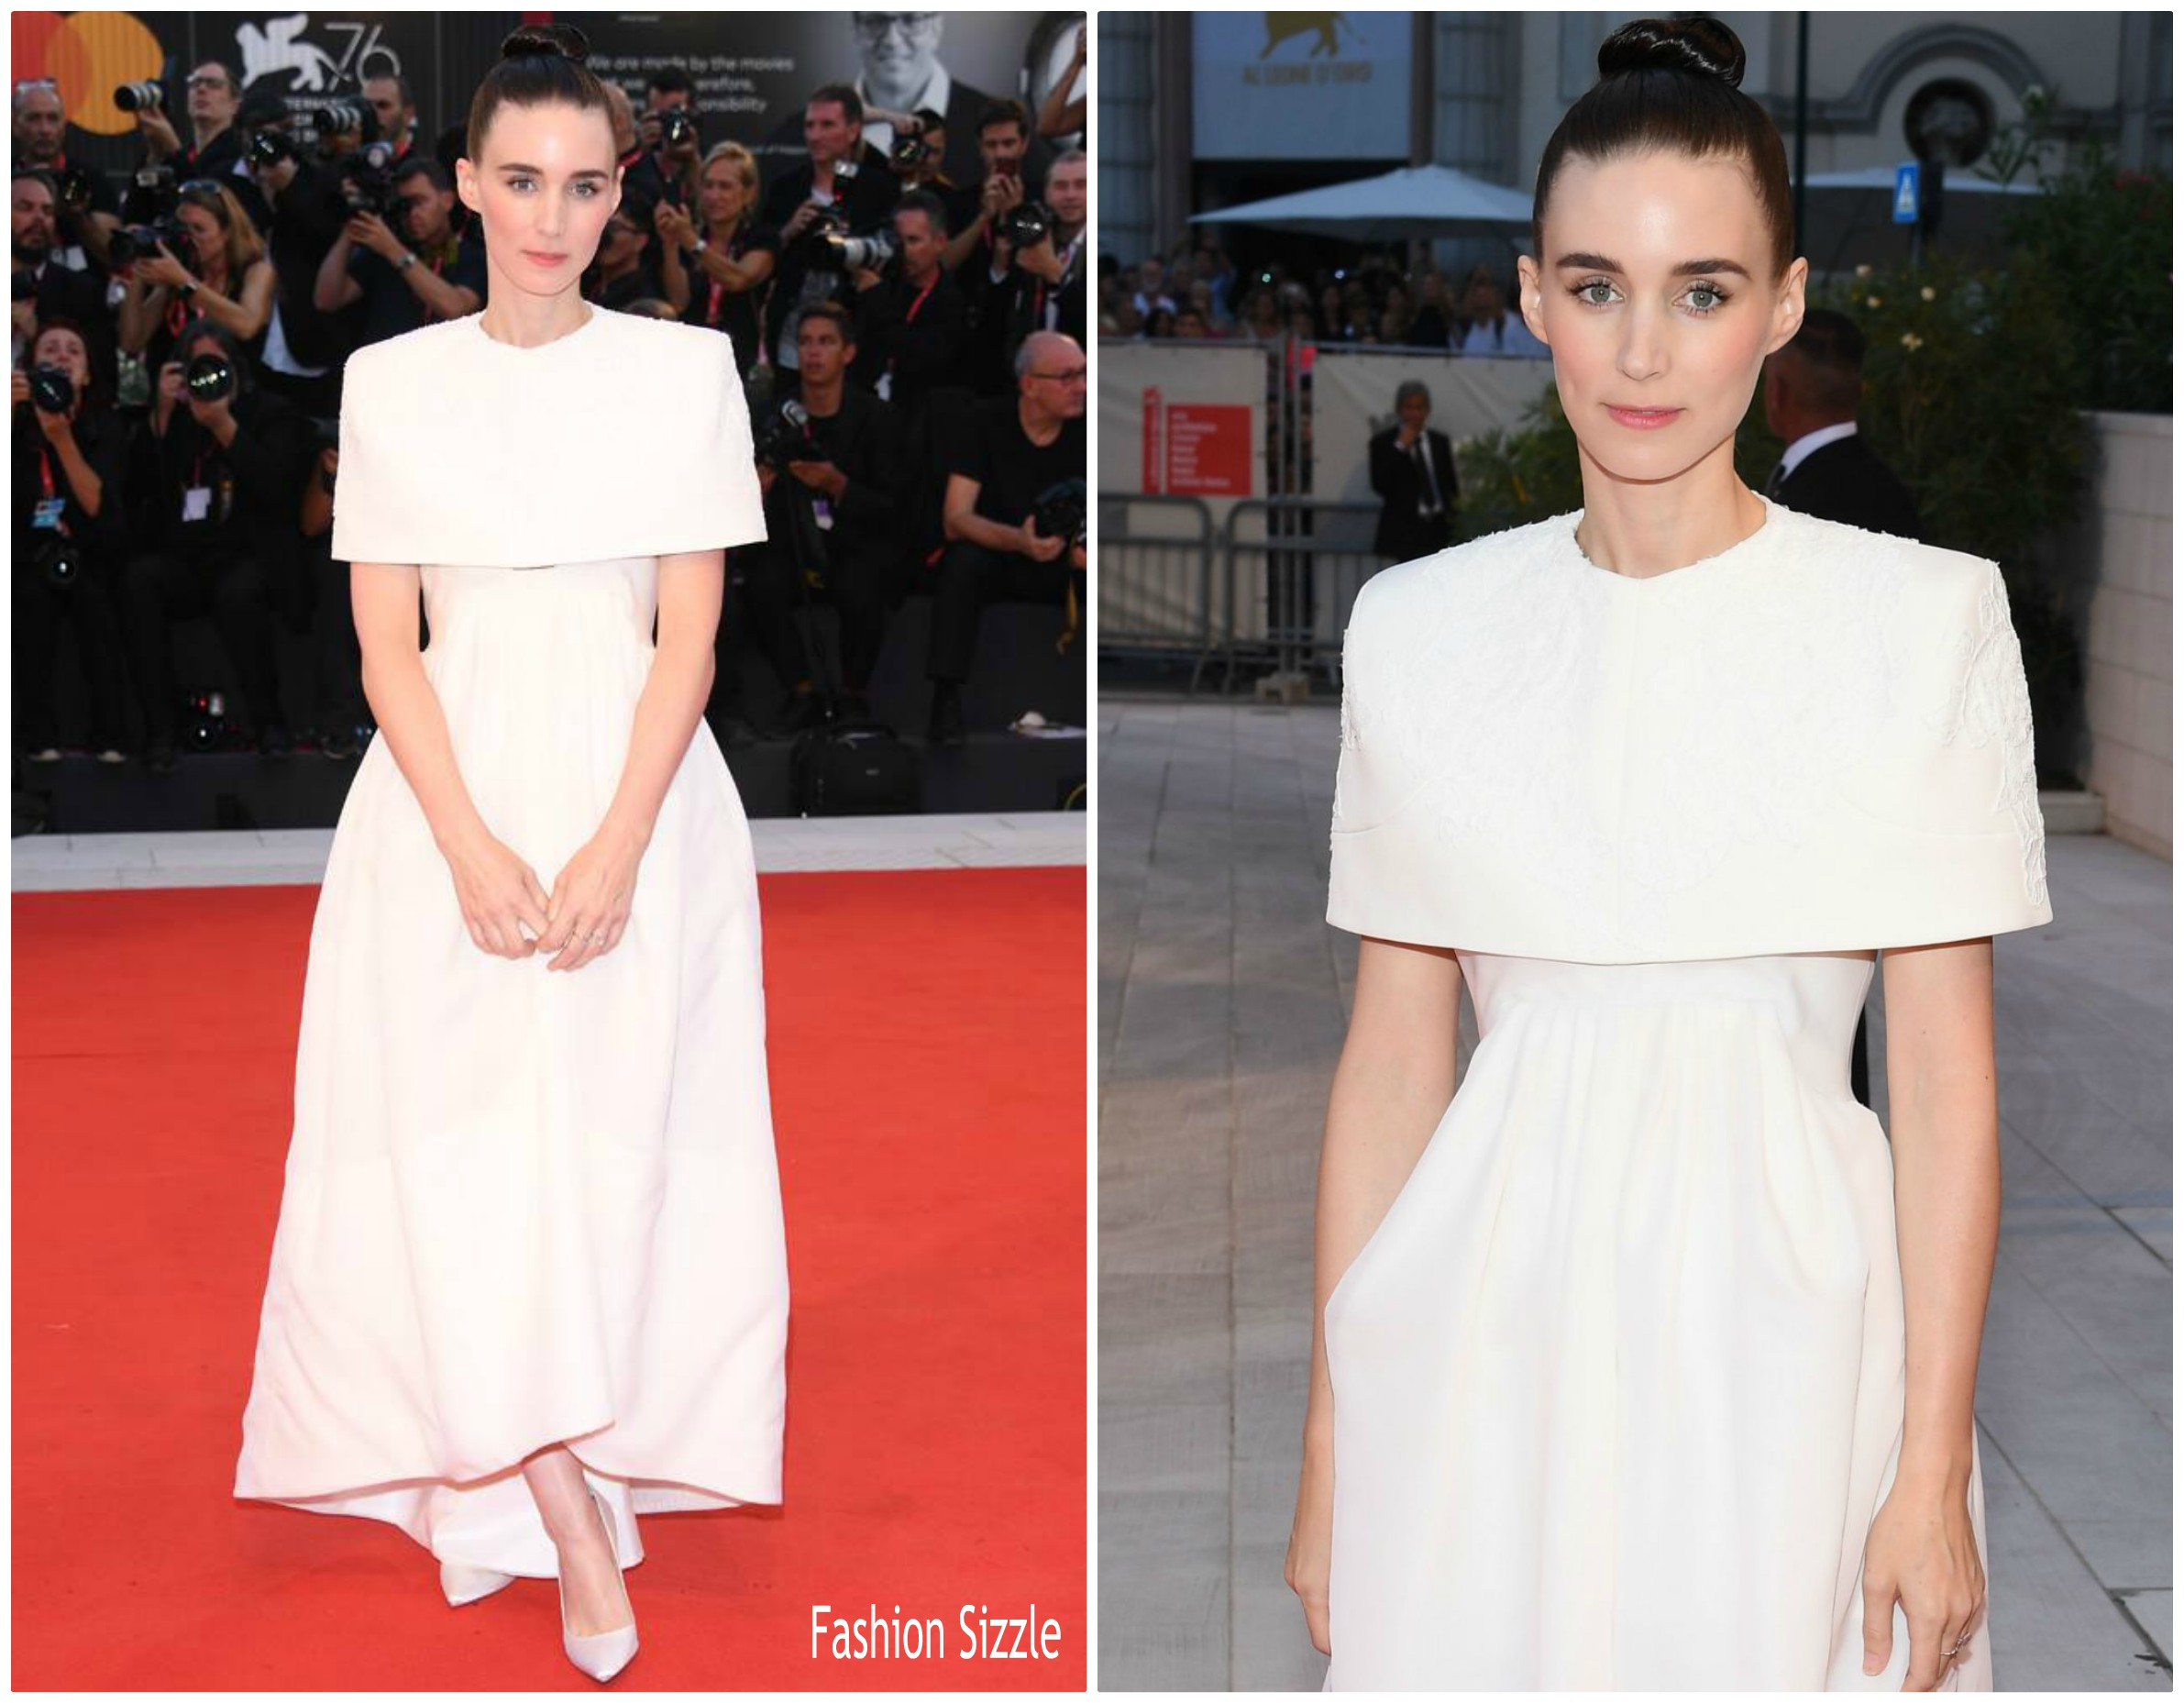 rooney-mara-in-givenchy-haute-couture-joker-venice-film-festival-premiere